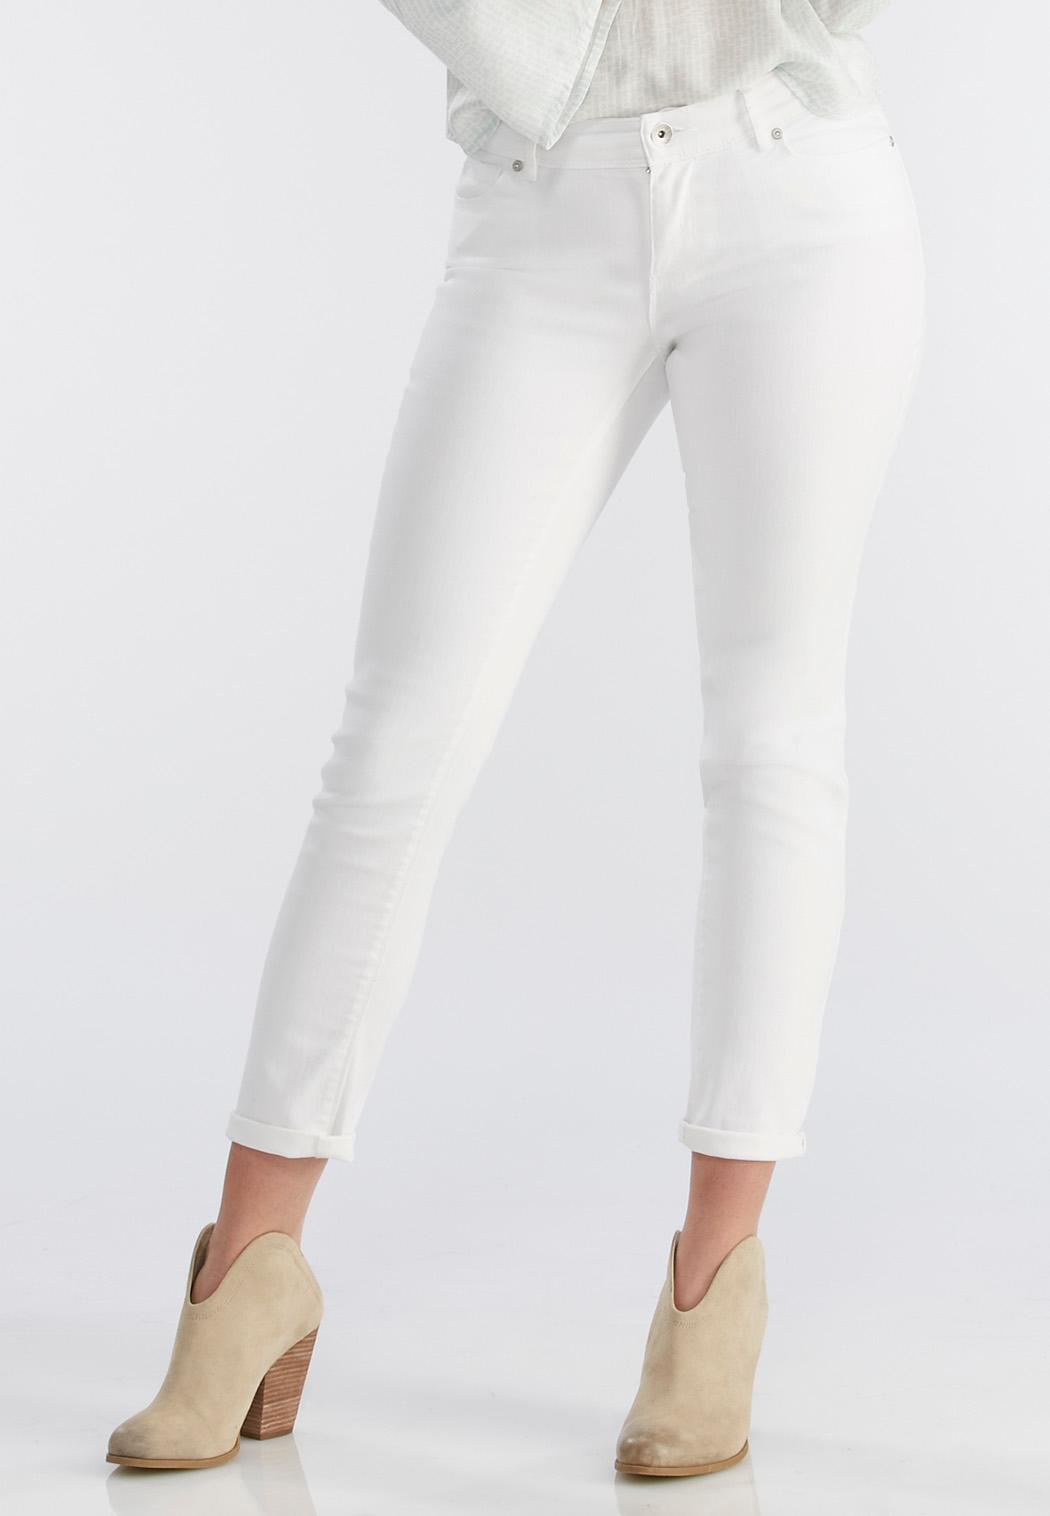 Women's Jeans, Jackets & More | Cato Fashions